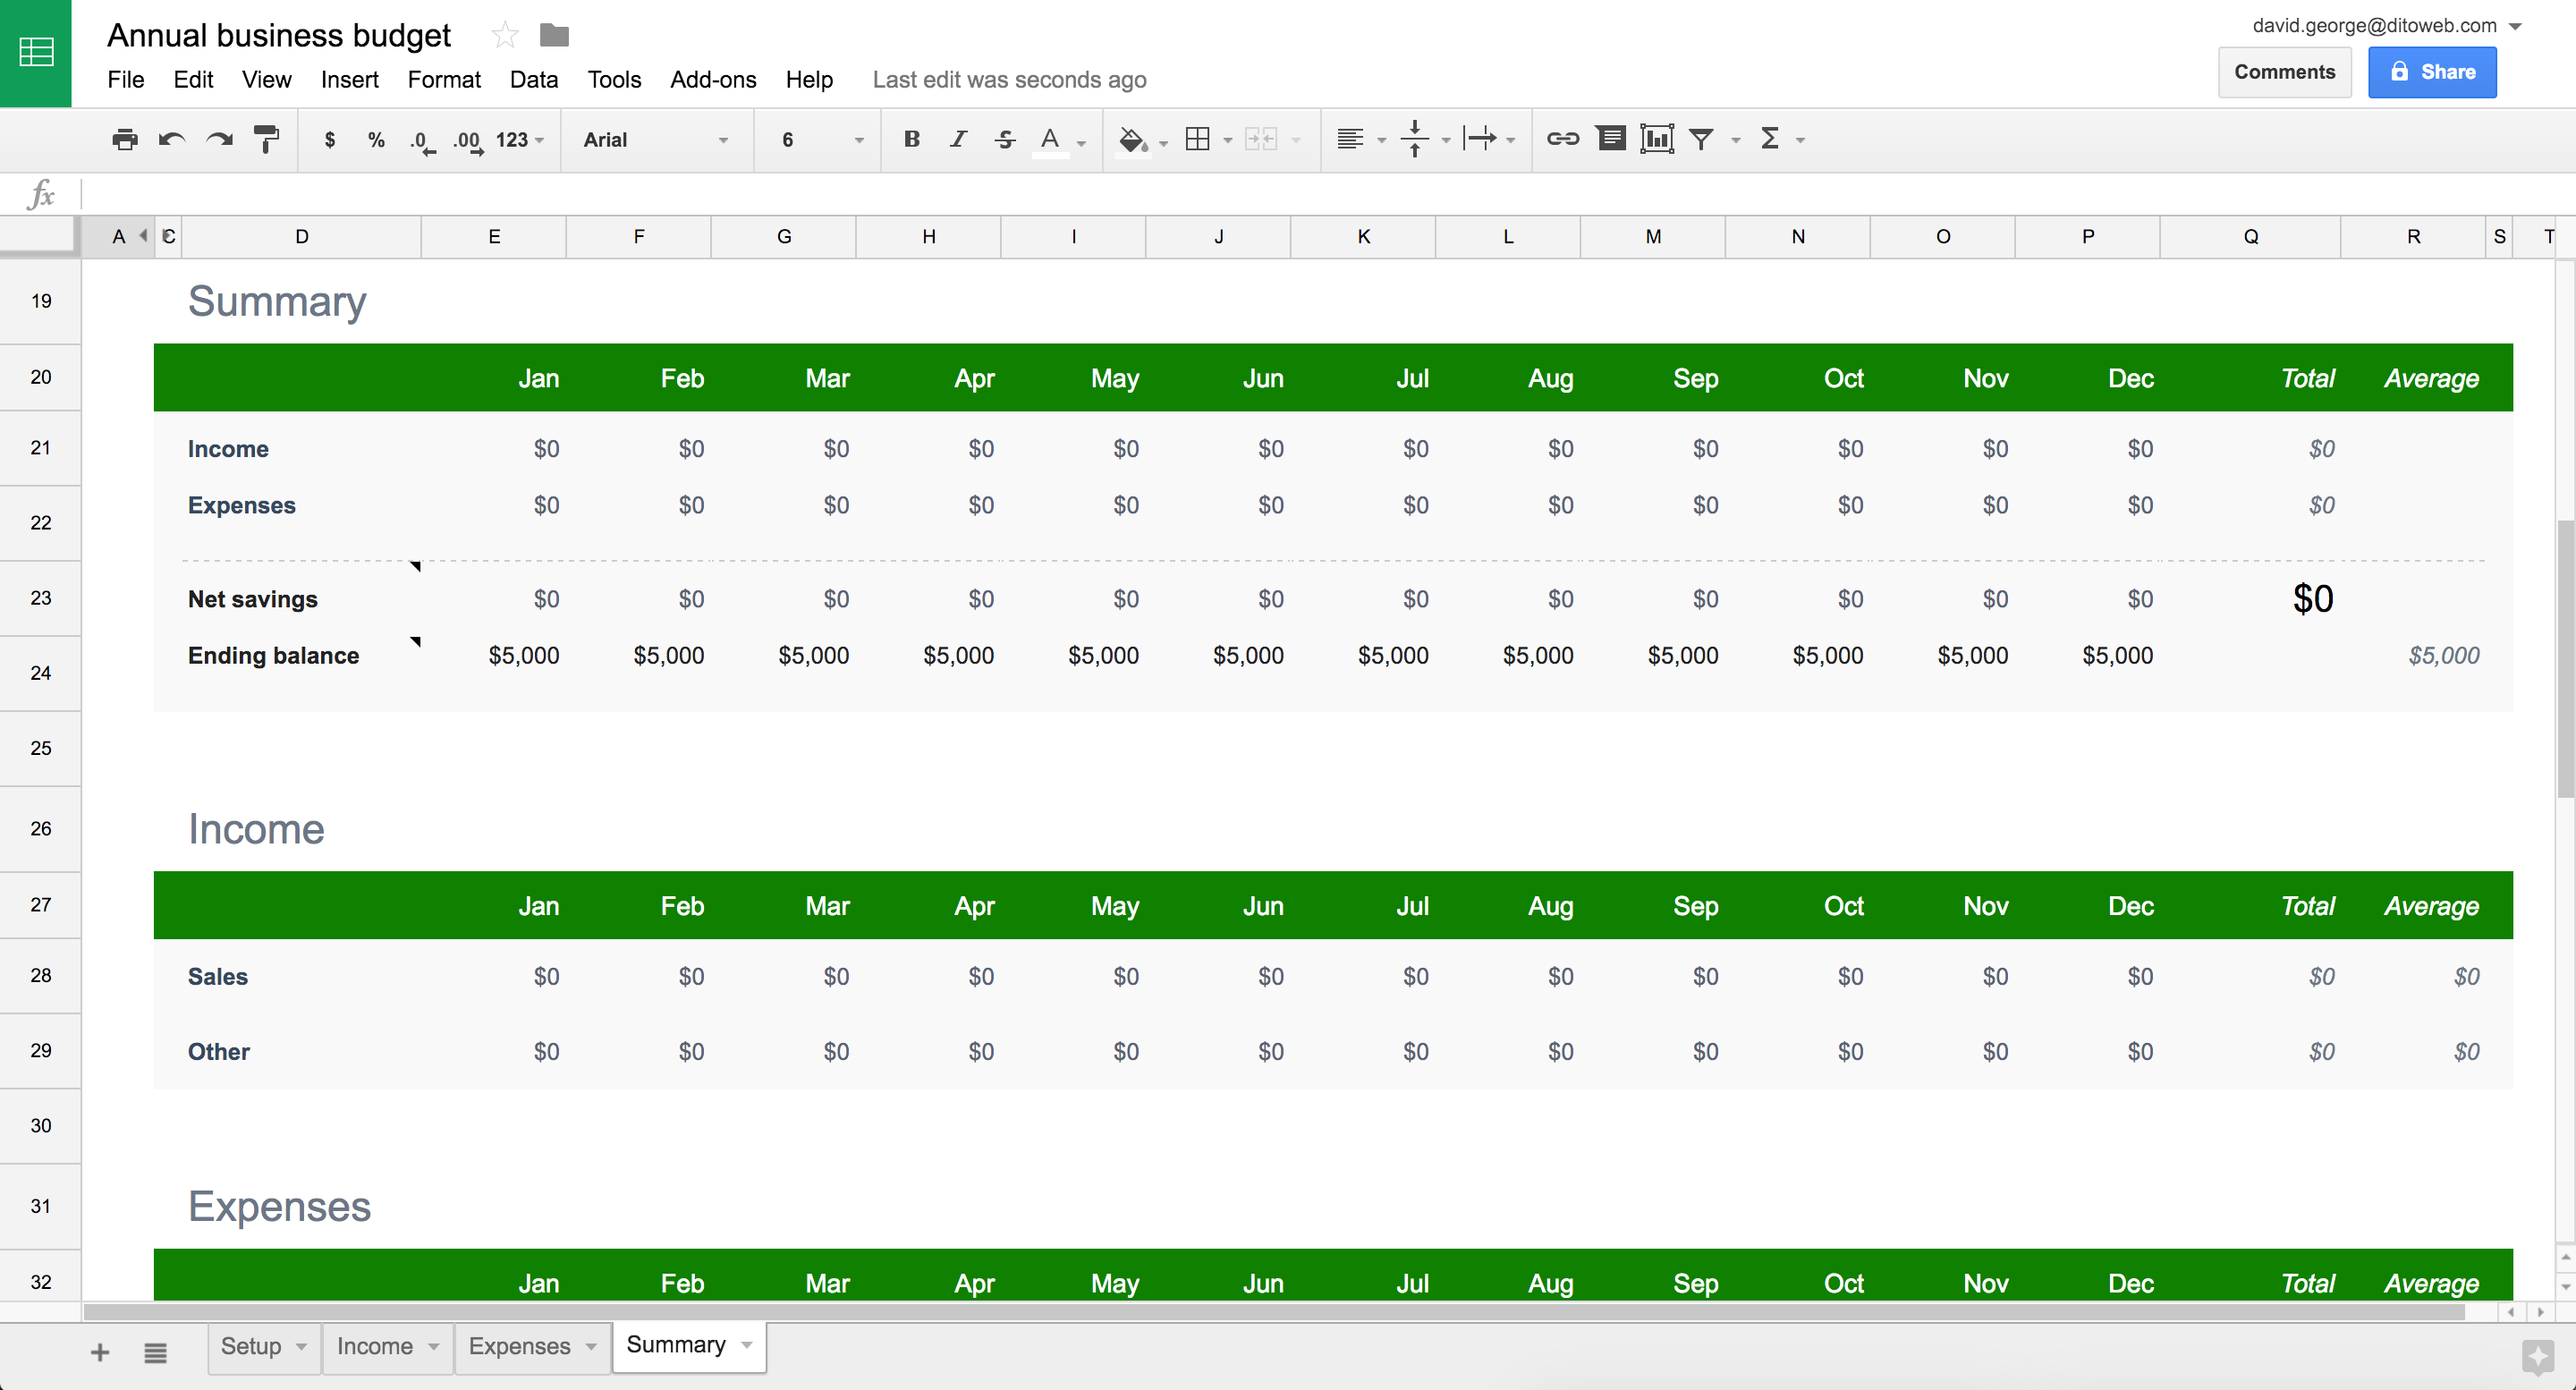 annual business budget template google sheets  New professionally-designed templates for Docs, Sheets ..